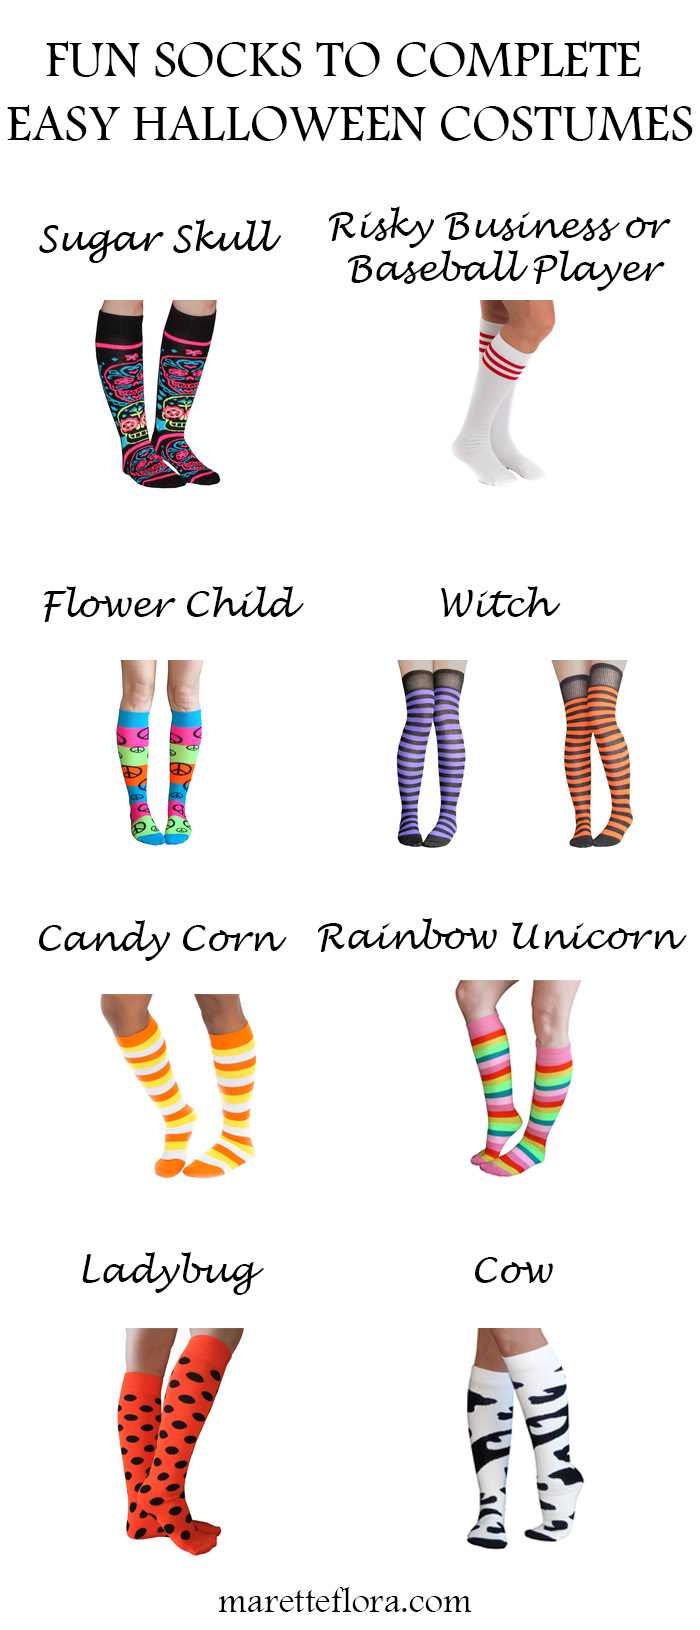 Fun Socks to Enhance Your Halloween Costume